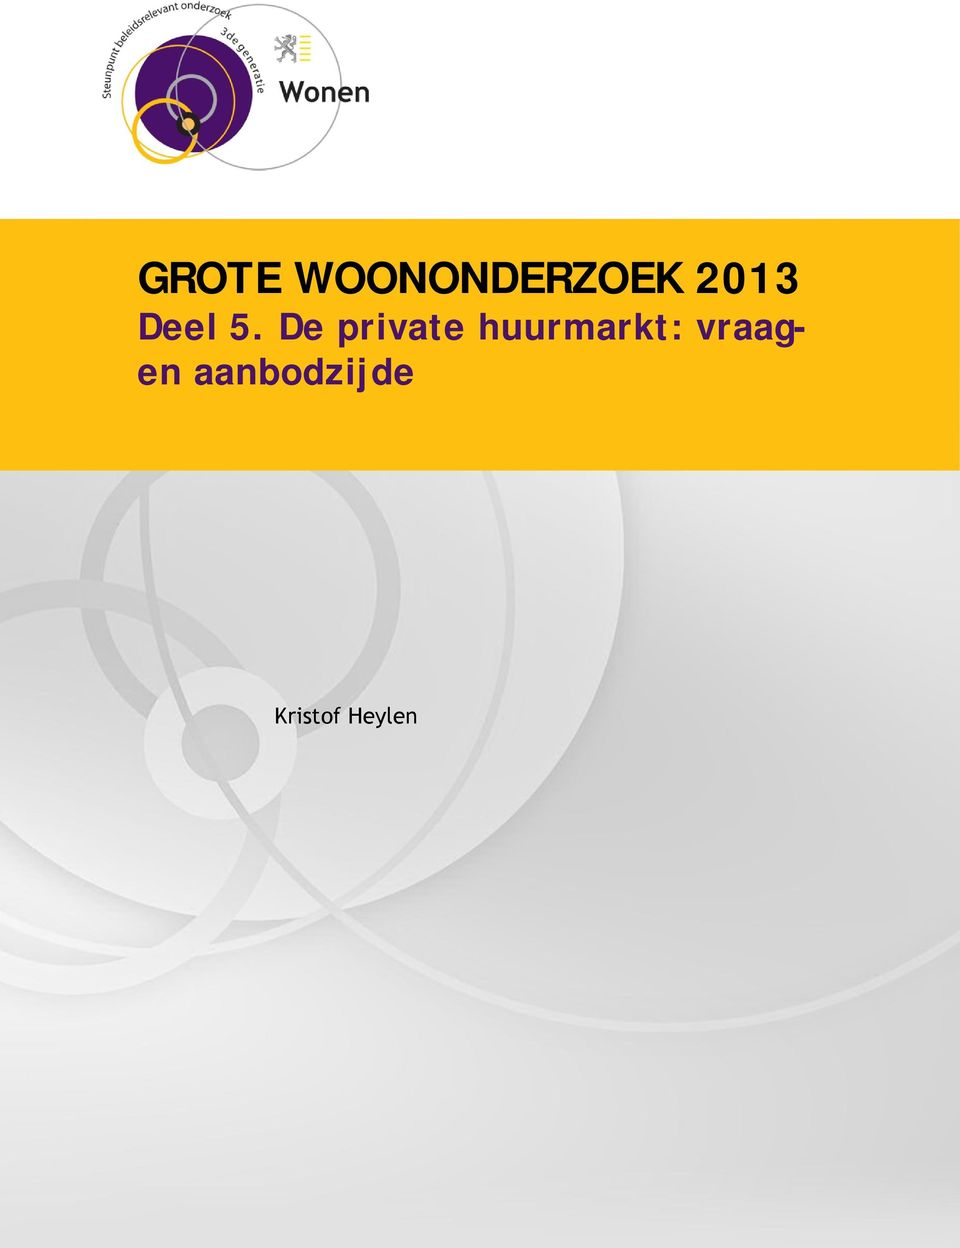 De private huurmarkt: